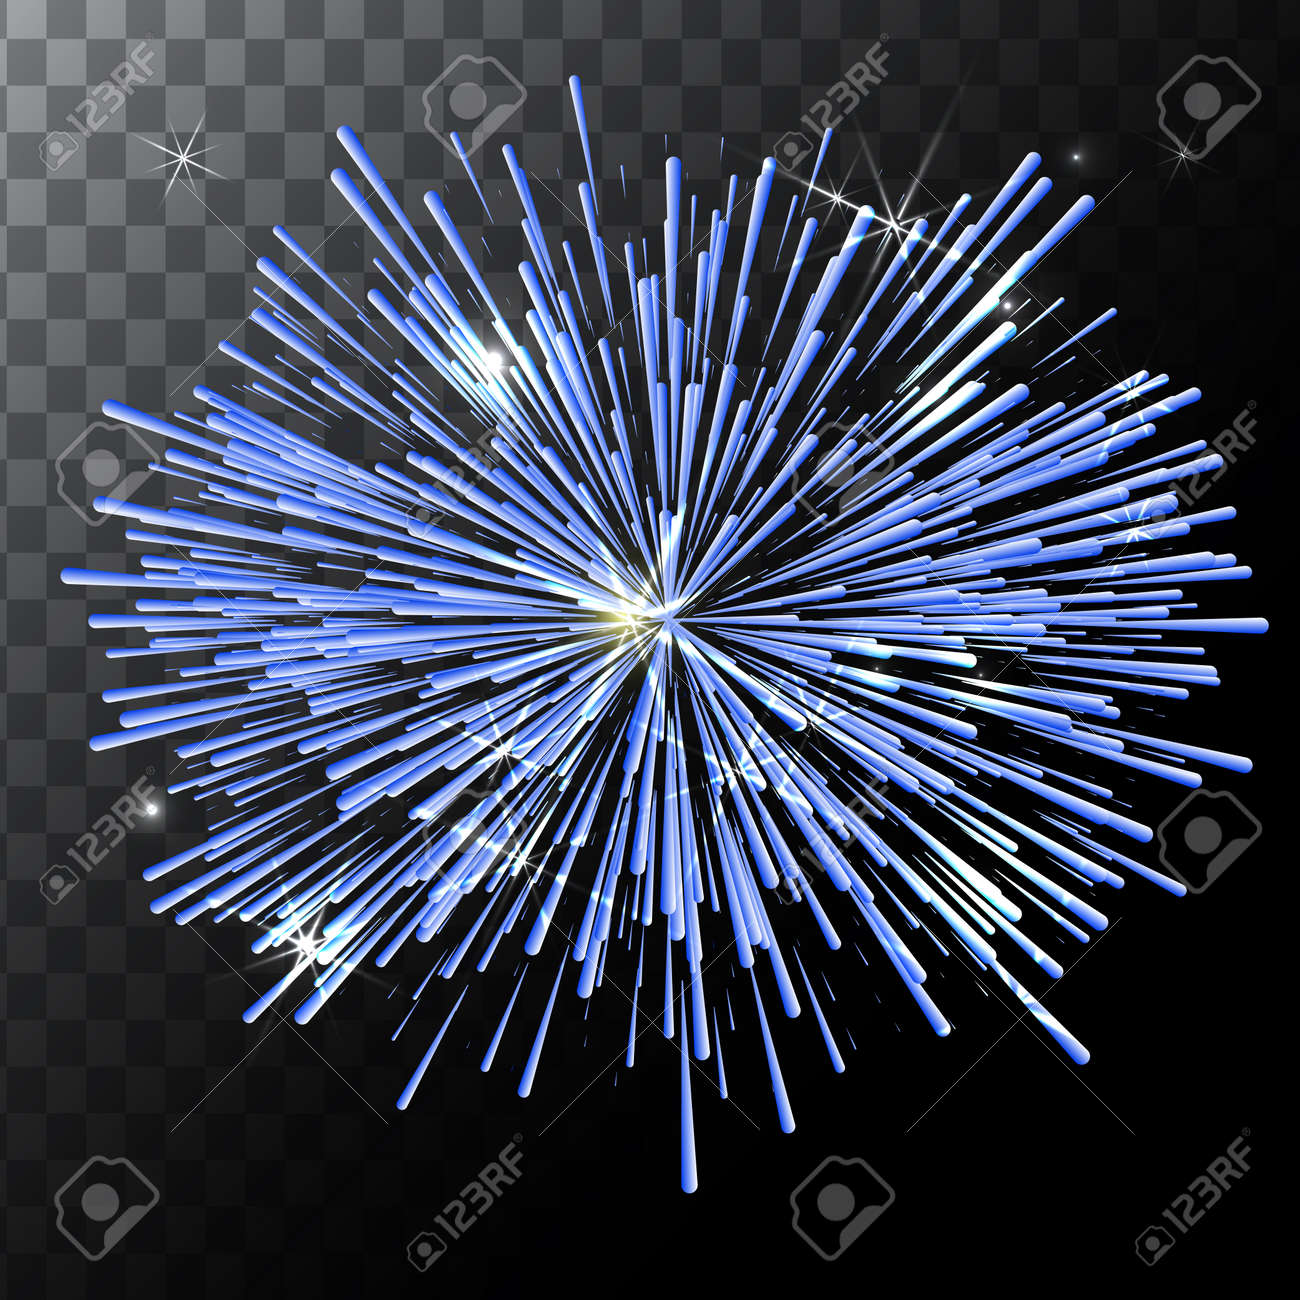 Vector isolated colorful fireworks on a transparent background. - 59113211